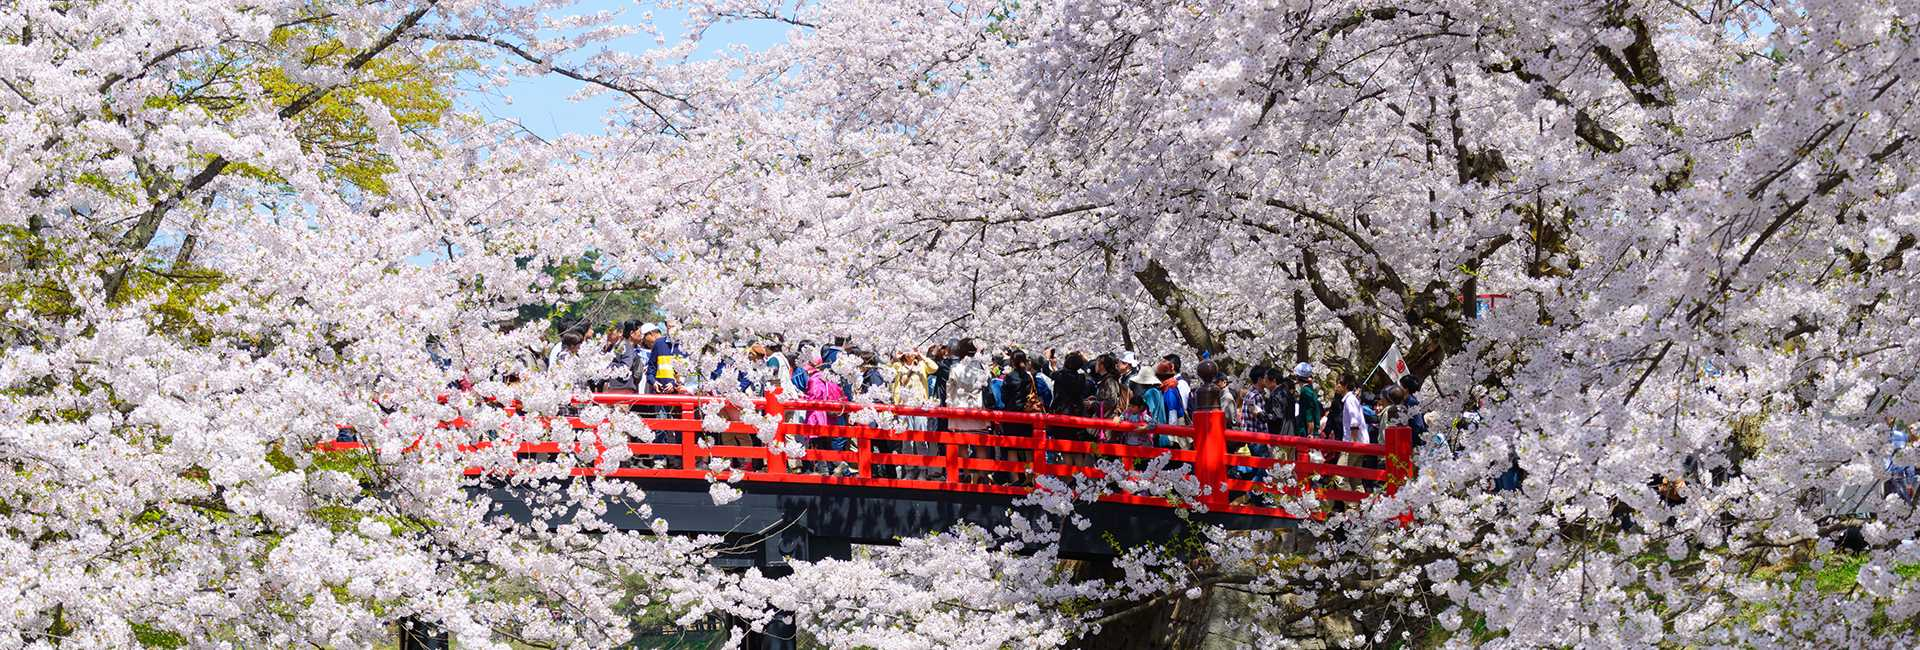 cherry blossoms in Hirosaki